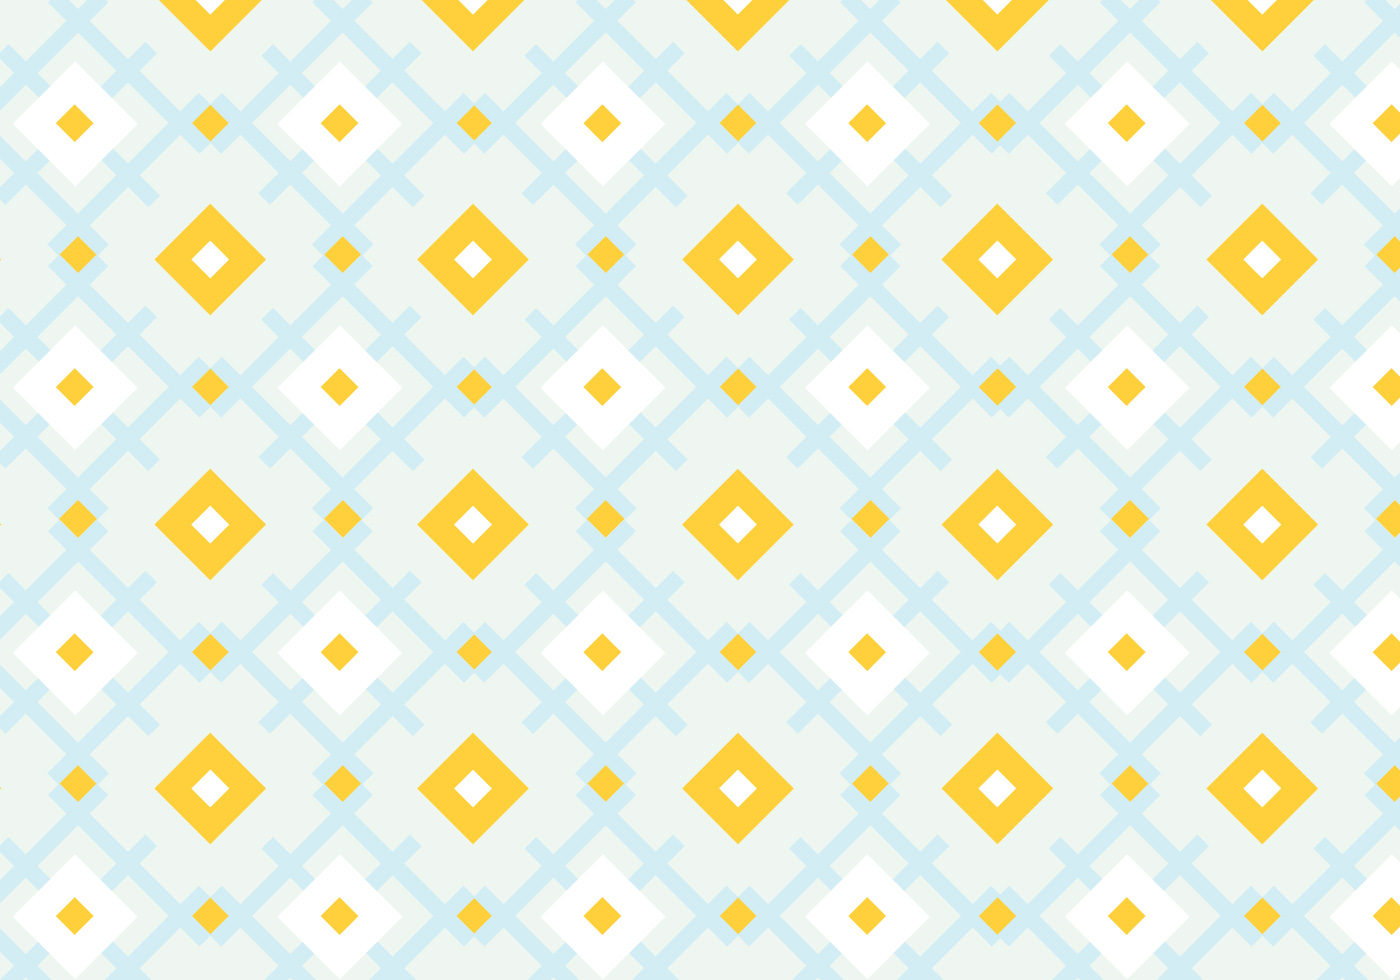 pastel geometric pattern background download free vector